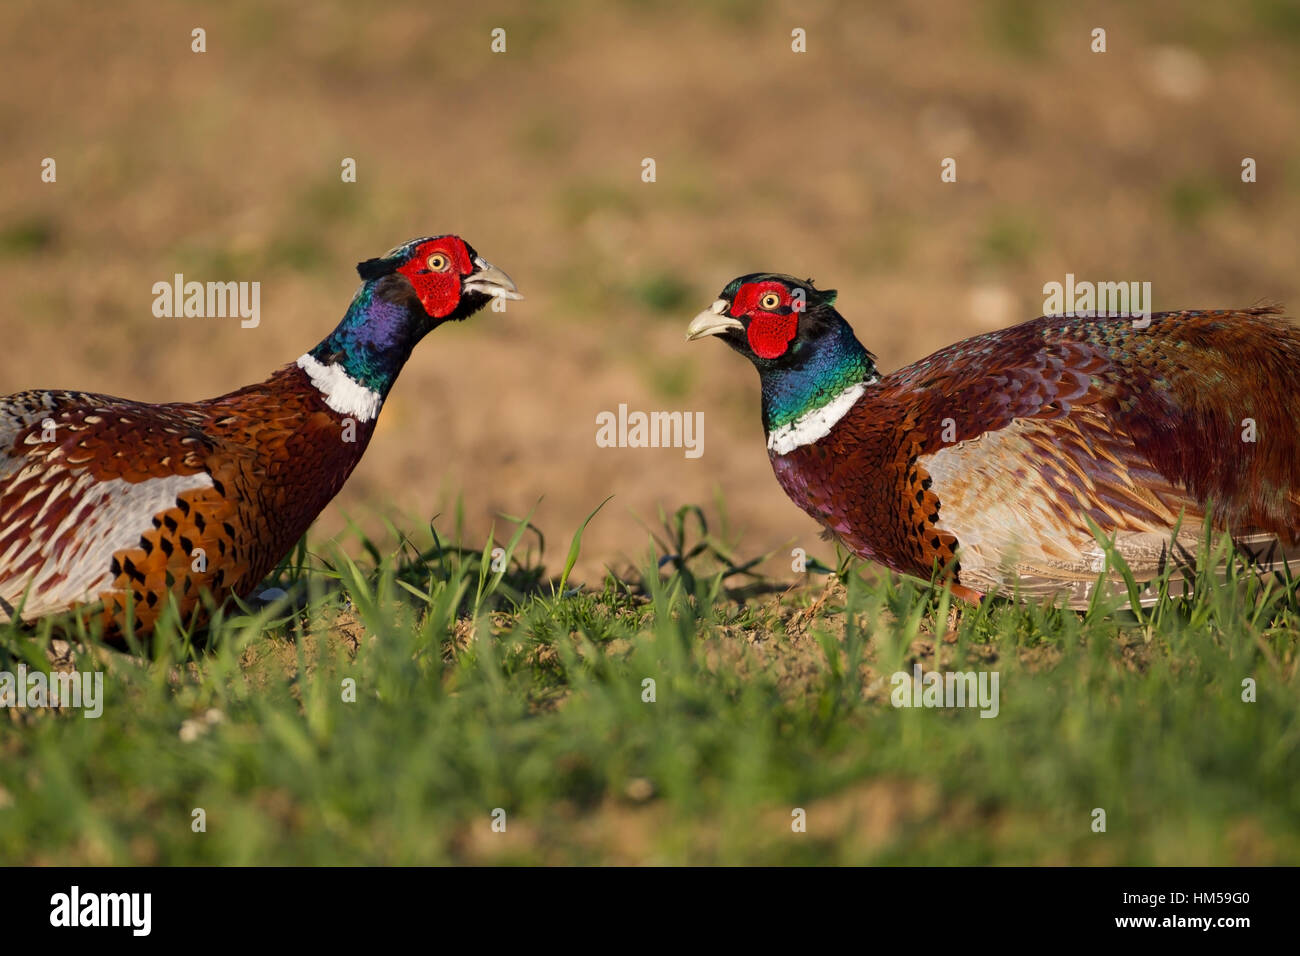 Pheasants (Phasianus colchicus), two male birds squaring up to each other, Suffolk, England, United Kingdom - Stock Image